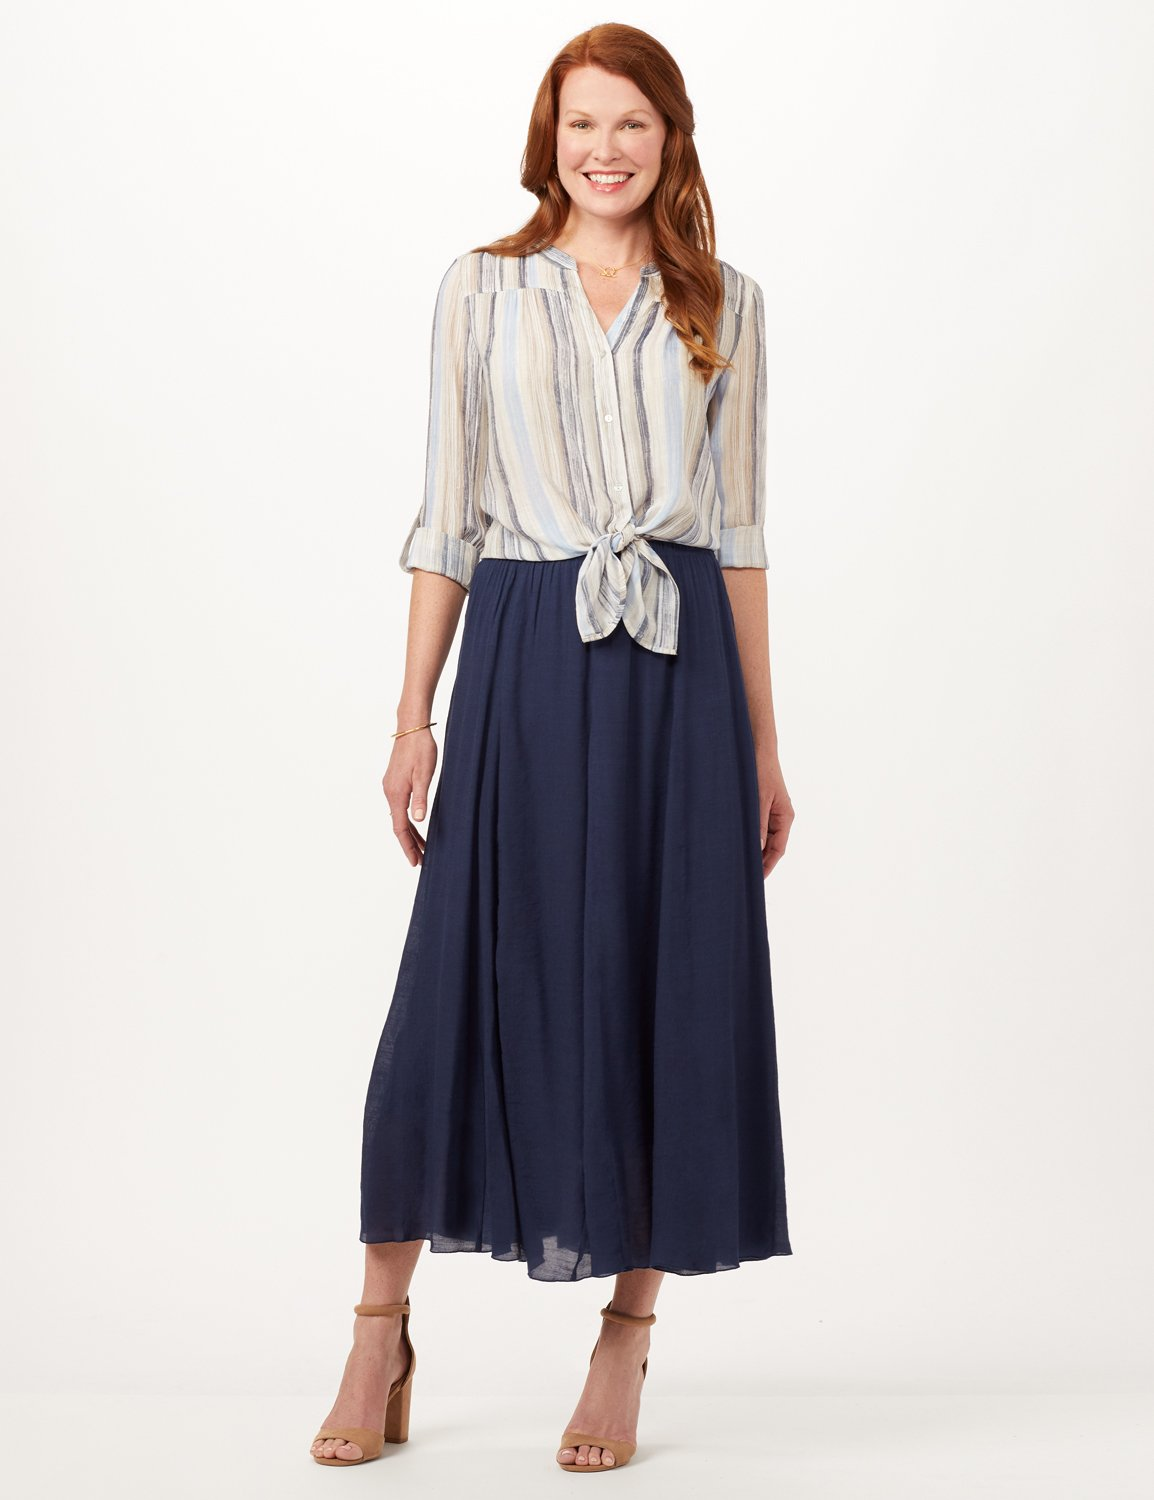 Textured Pull-On Skirt -Deep Pacific Blue - Front